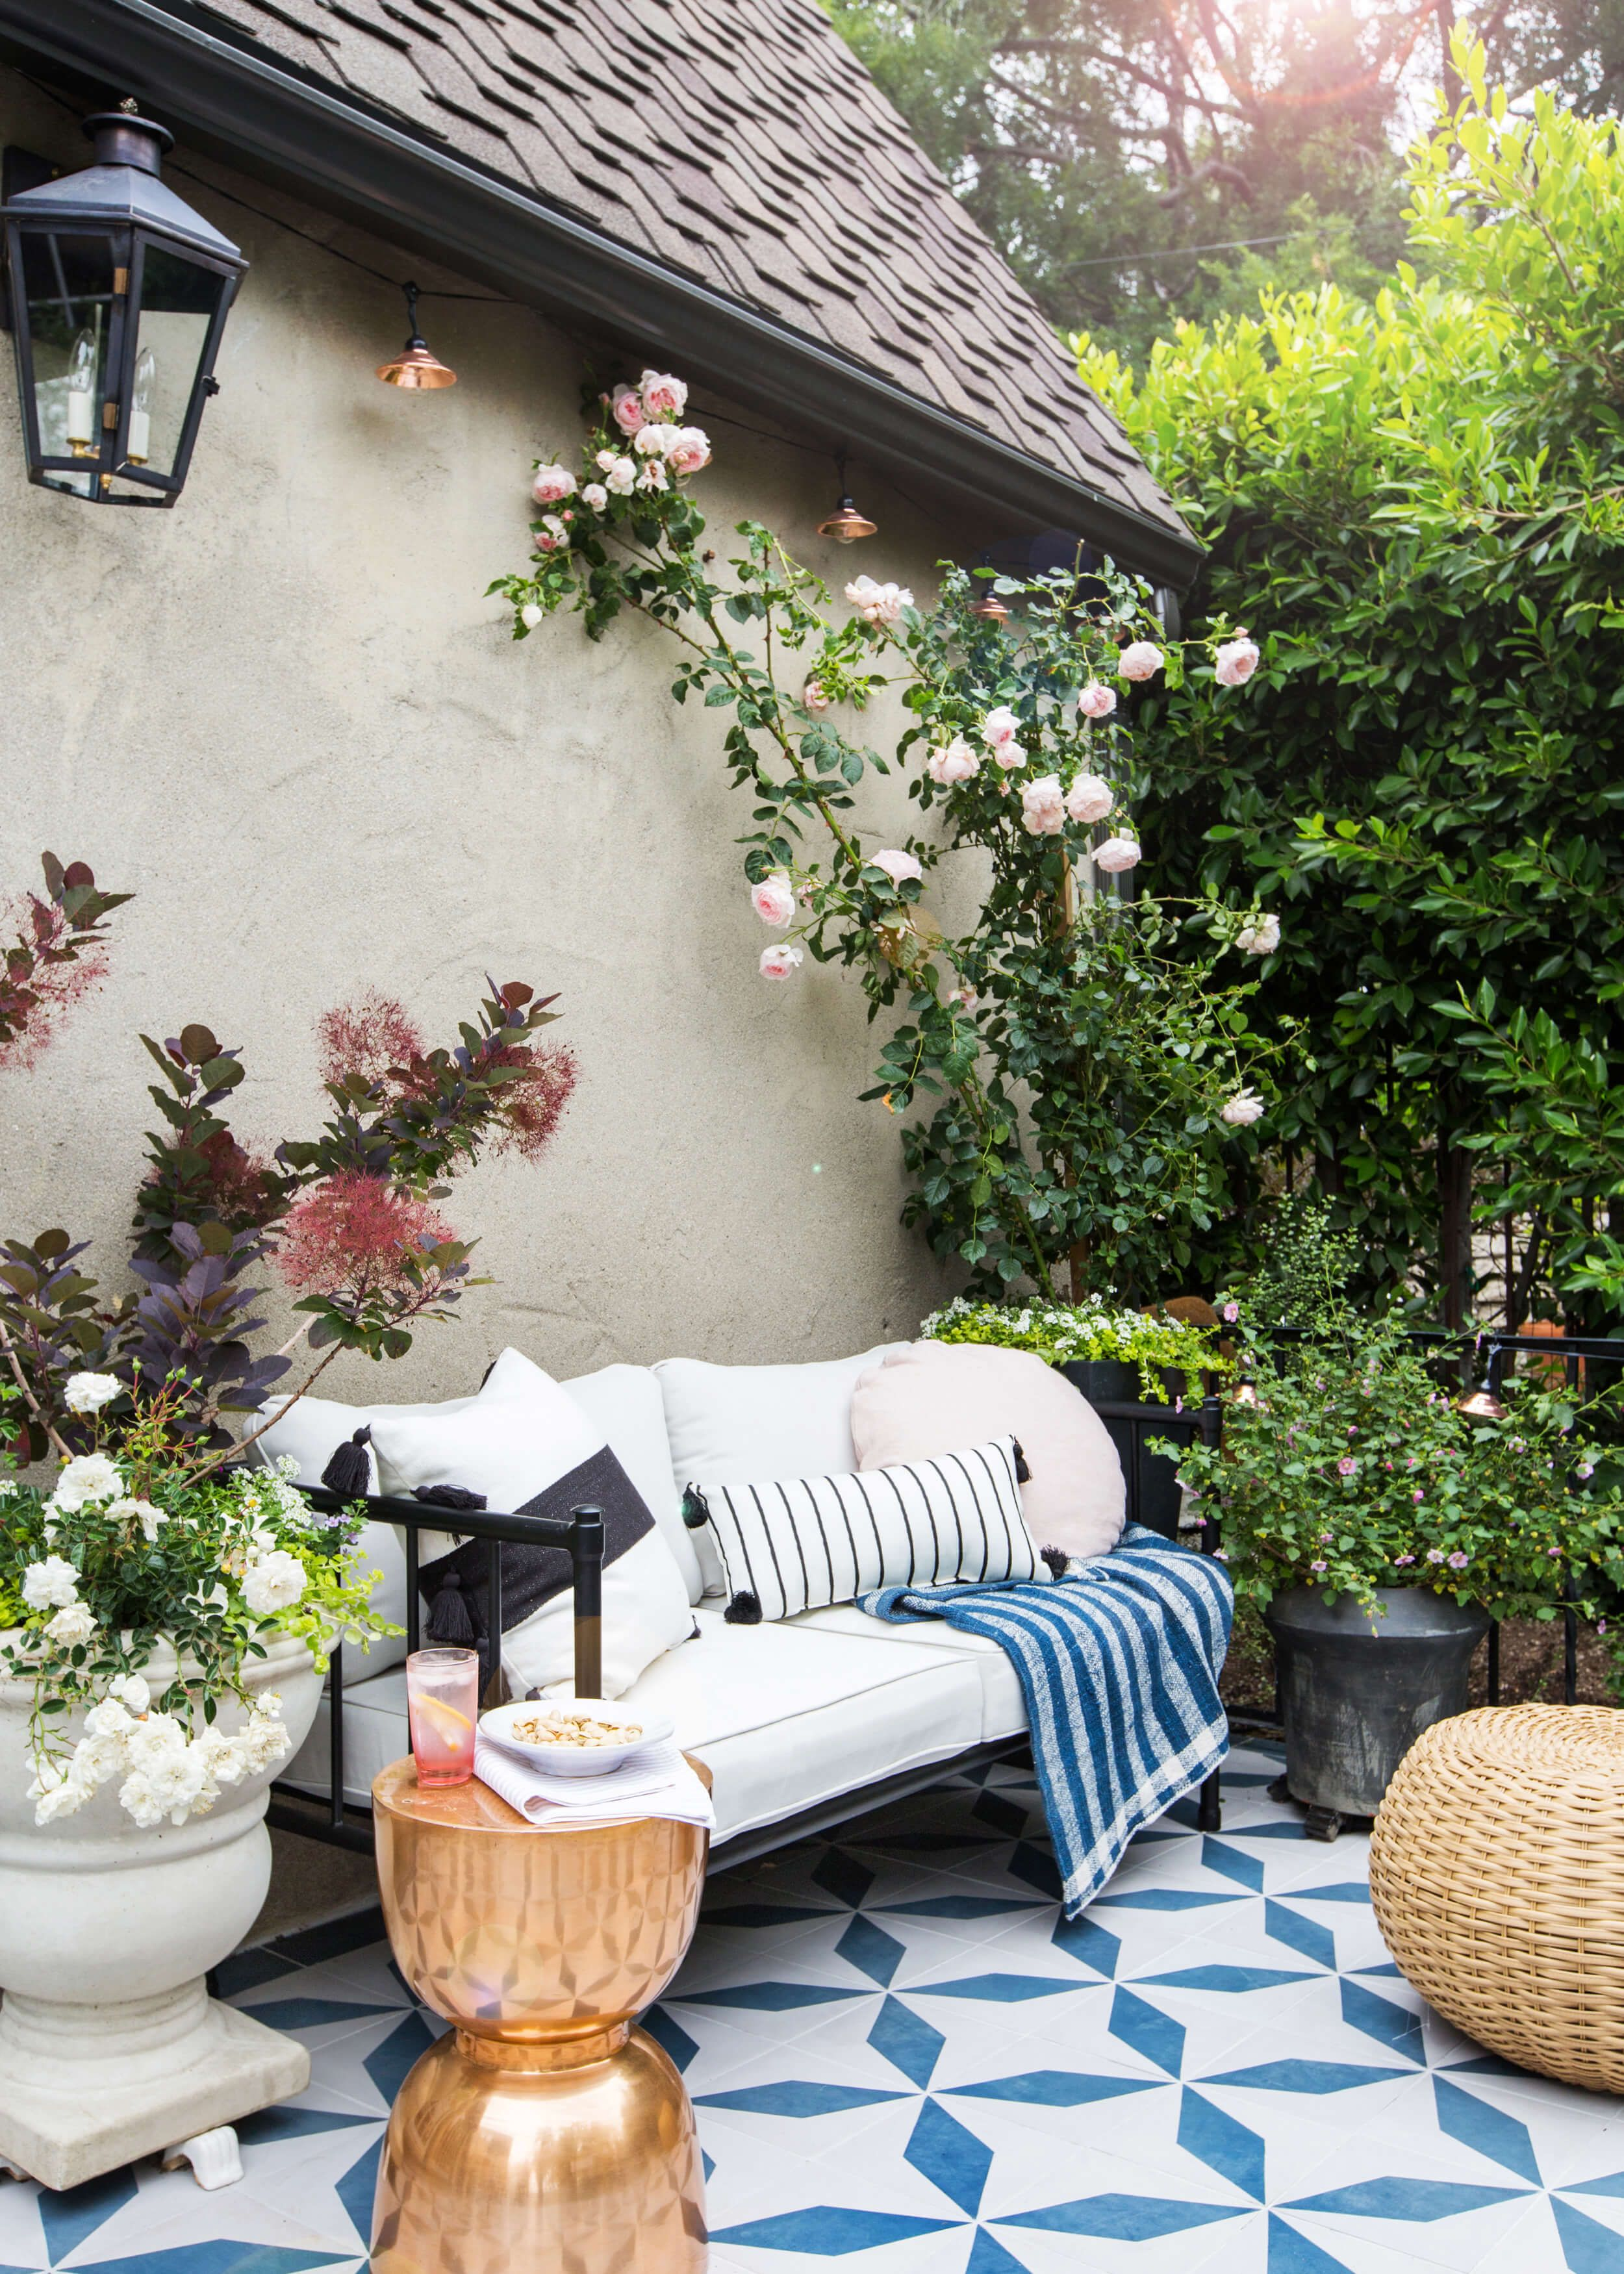 I Love This Garden Patio With The Moroccan Style Floor Tiles Gold